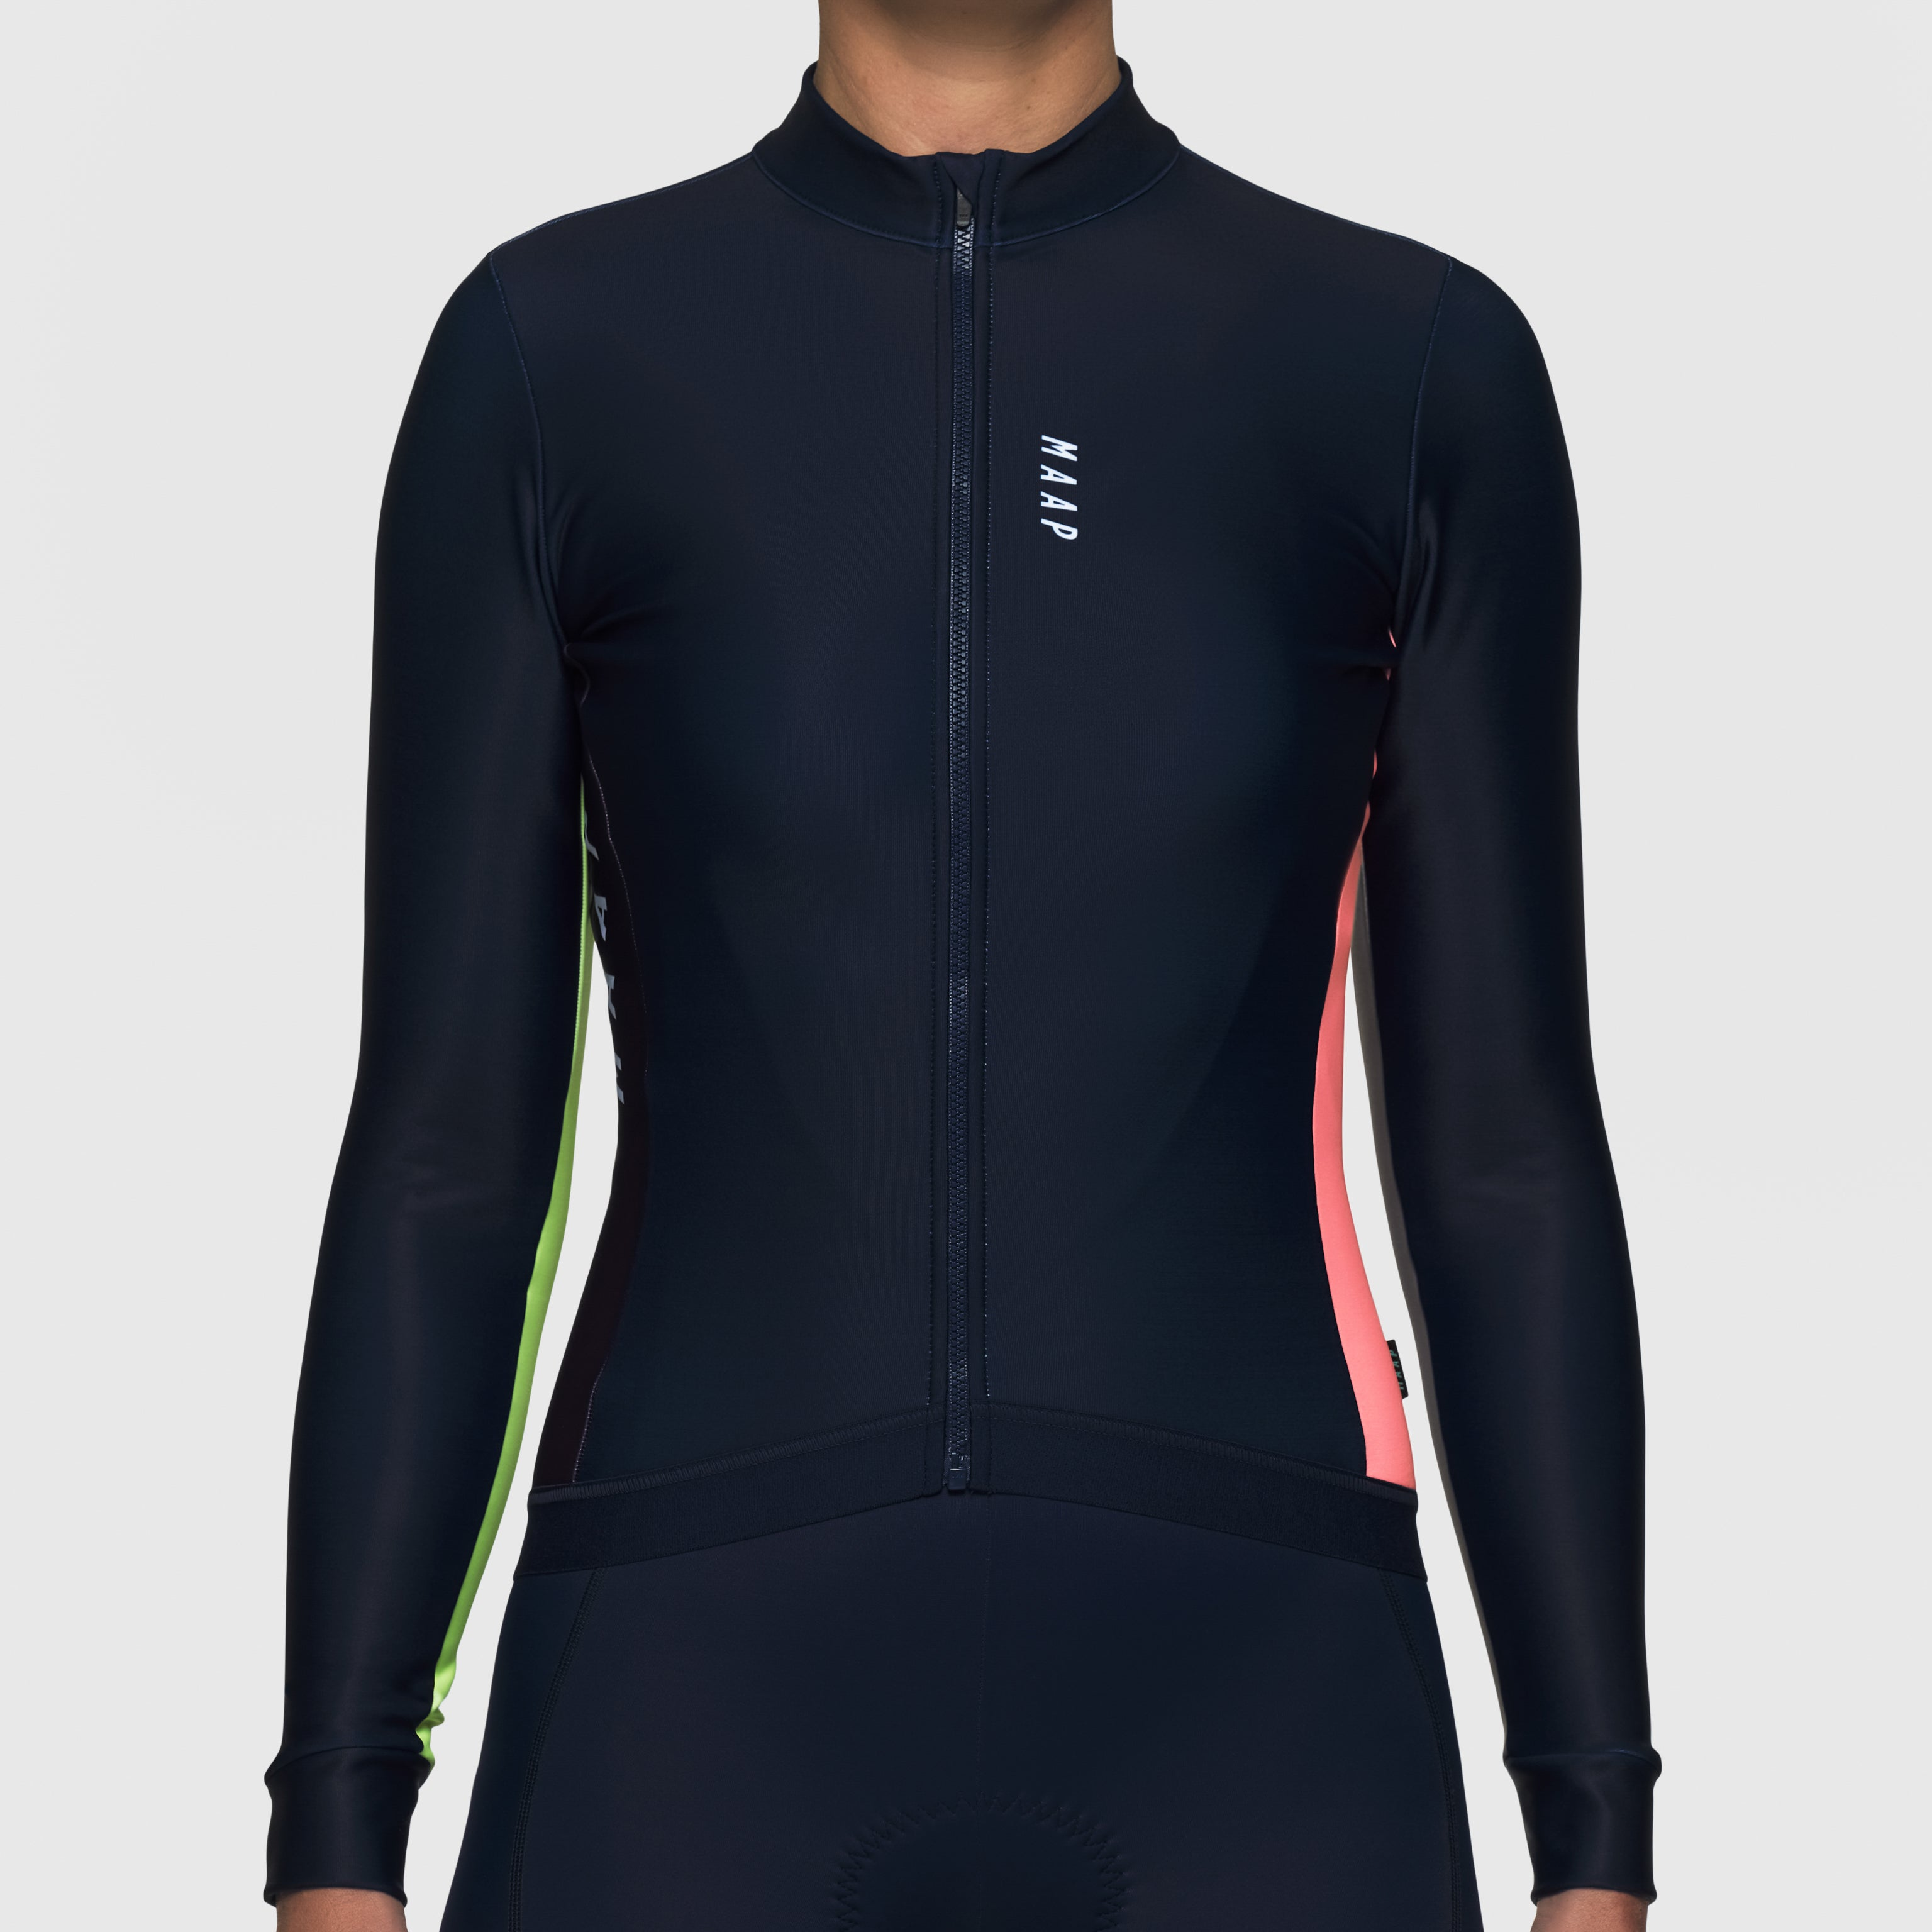 Women's Vista Team LS Jersey